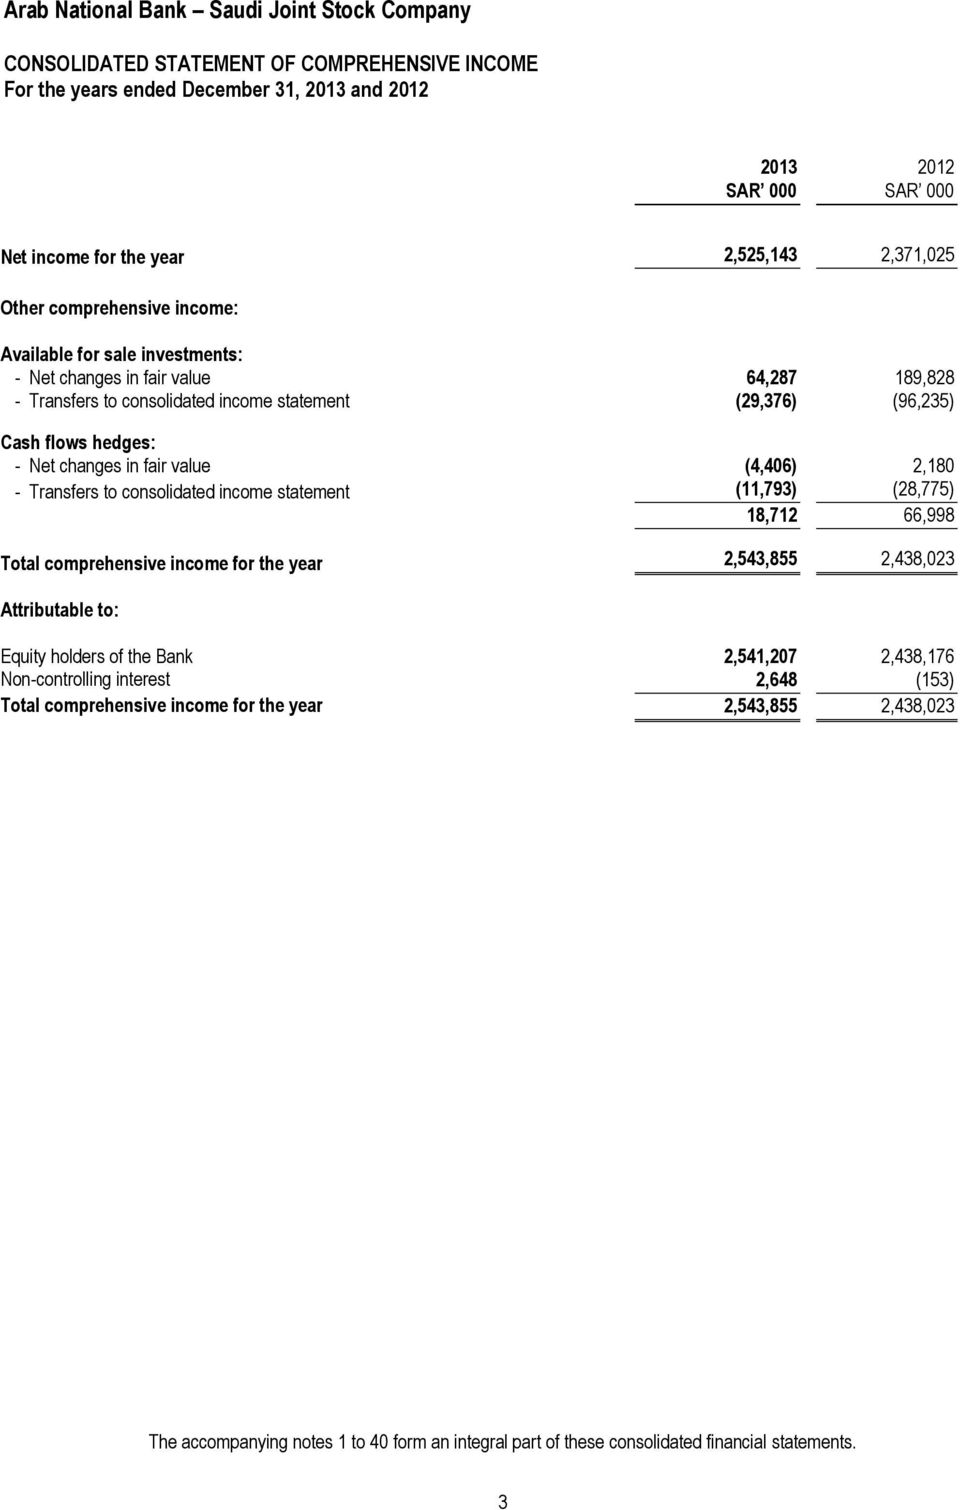 consolidated income statement (11,793) (28,775) 18,712 66,998 Total comprehensive income for the year 2,543,855 2,438,023 Attributable to: Equity holders of the Bank 2,541,207